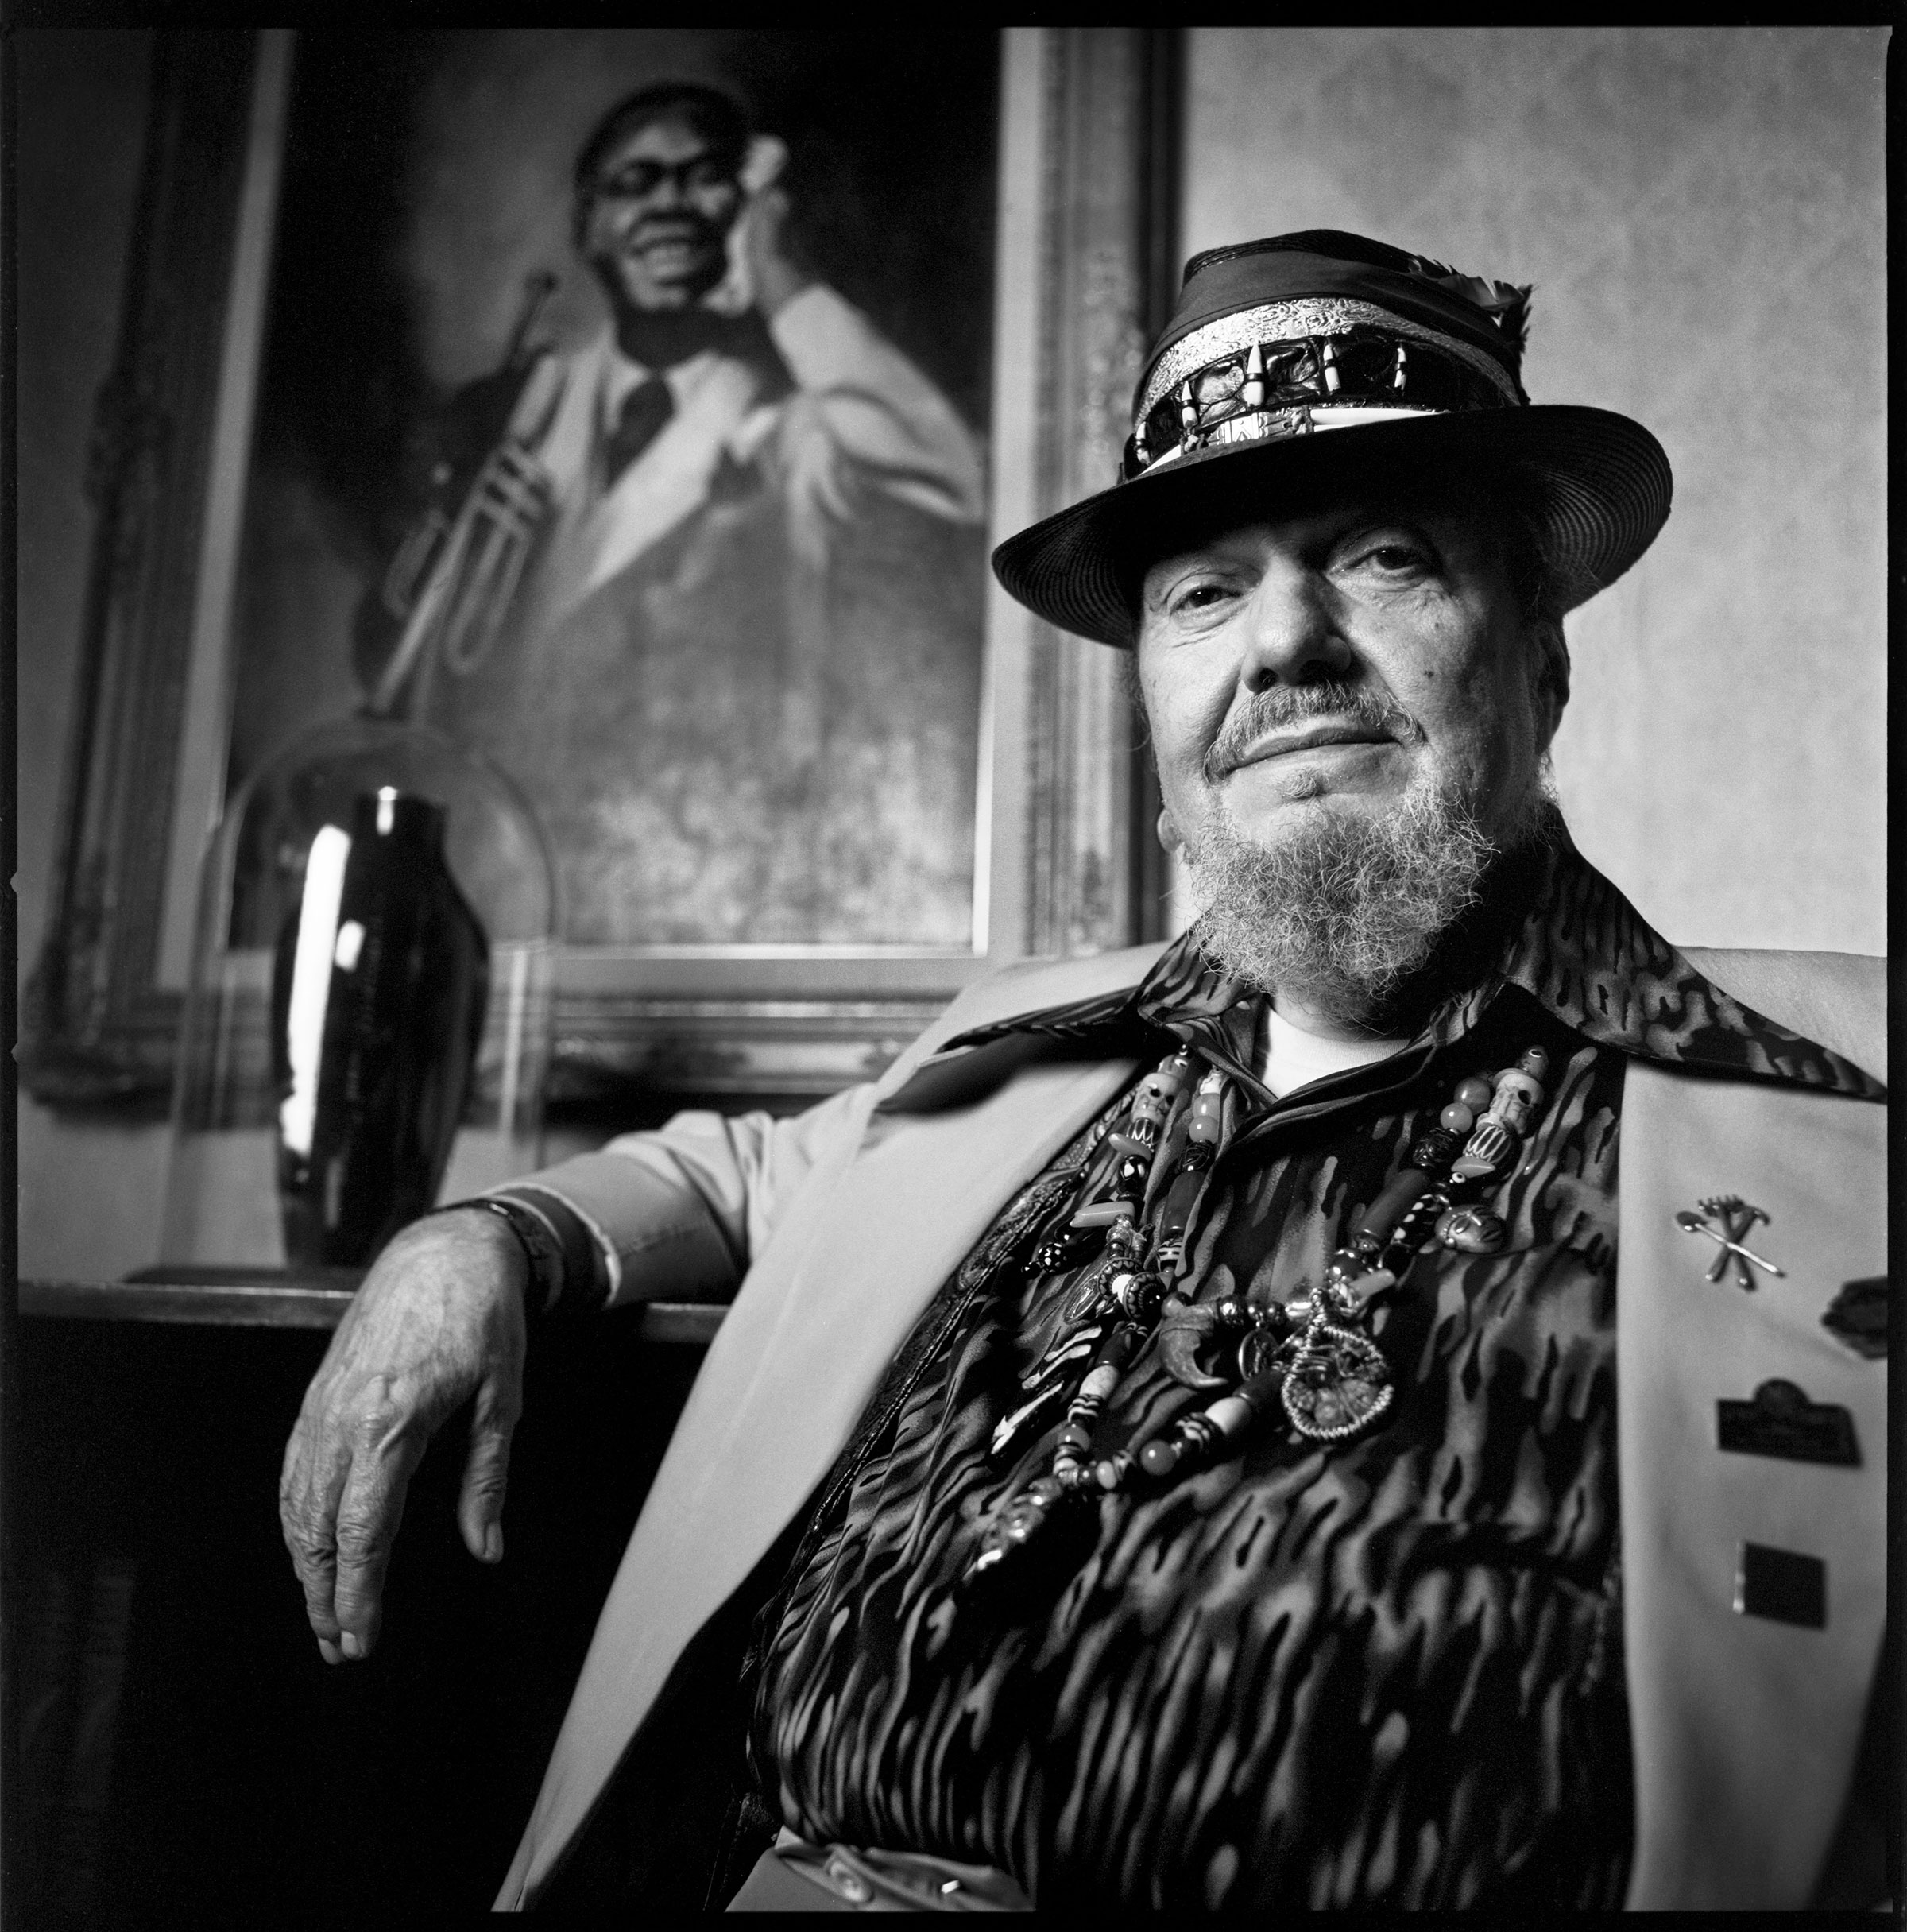 Dr. John, seen here in 2014, released his first album, Gris-Gris, in 1968 and was inducted into the Rock and Roll Hall of Fame in 2011.